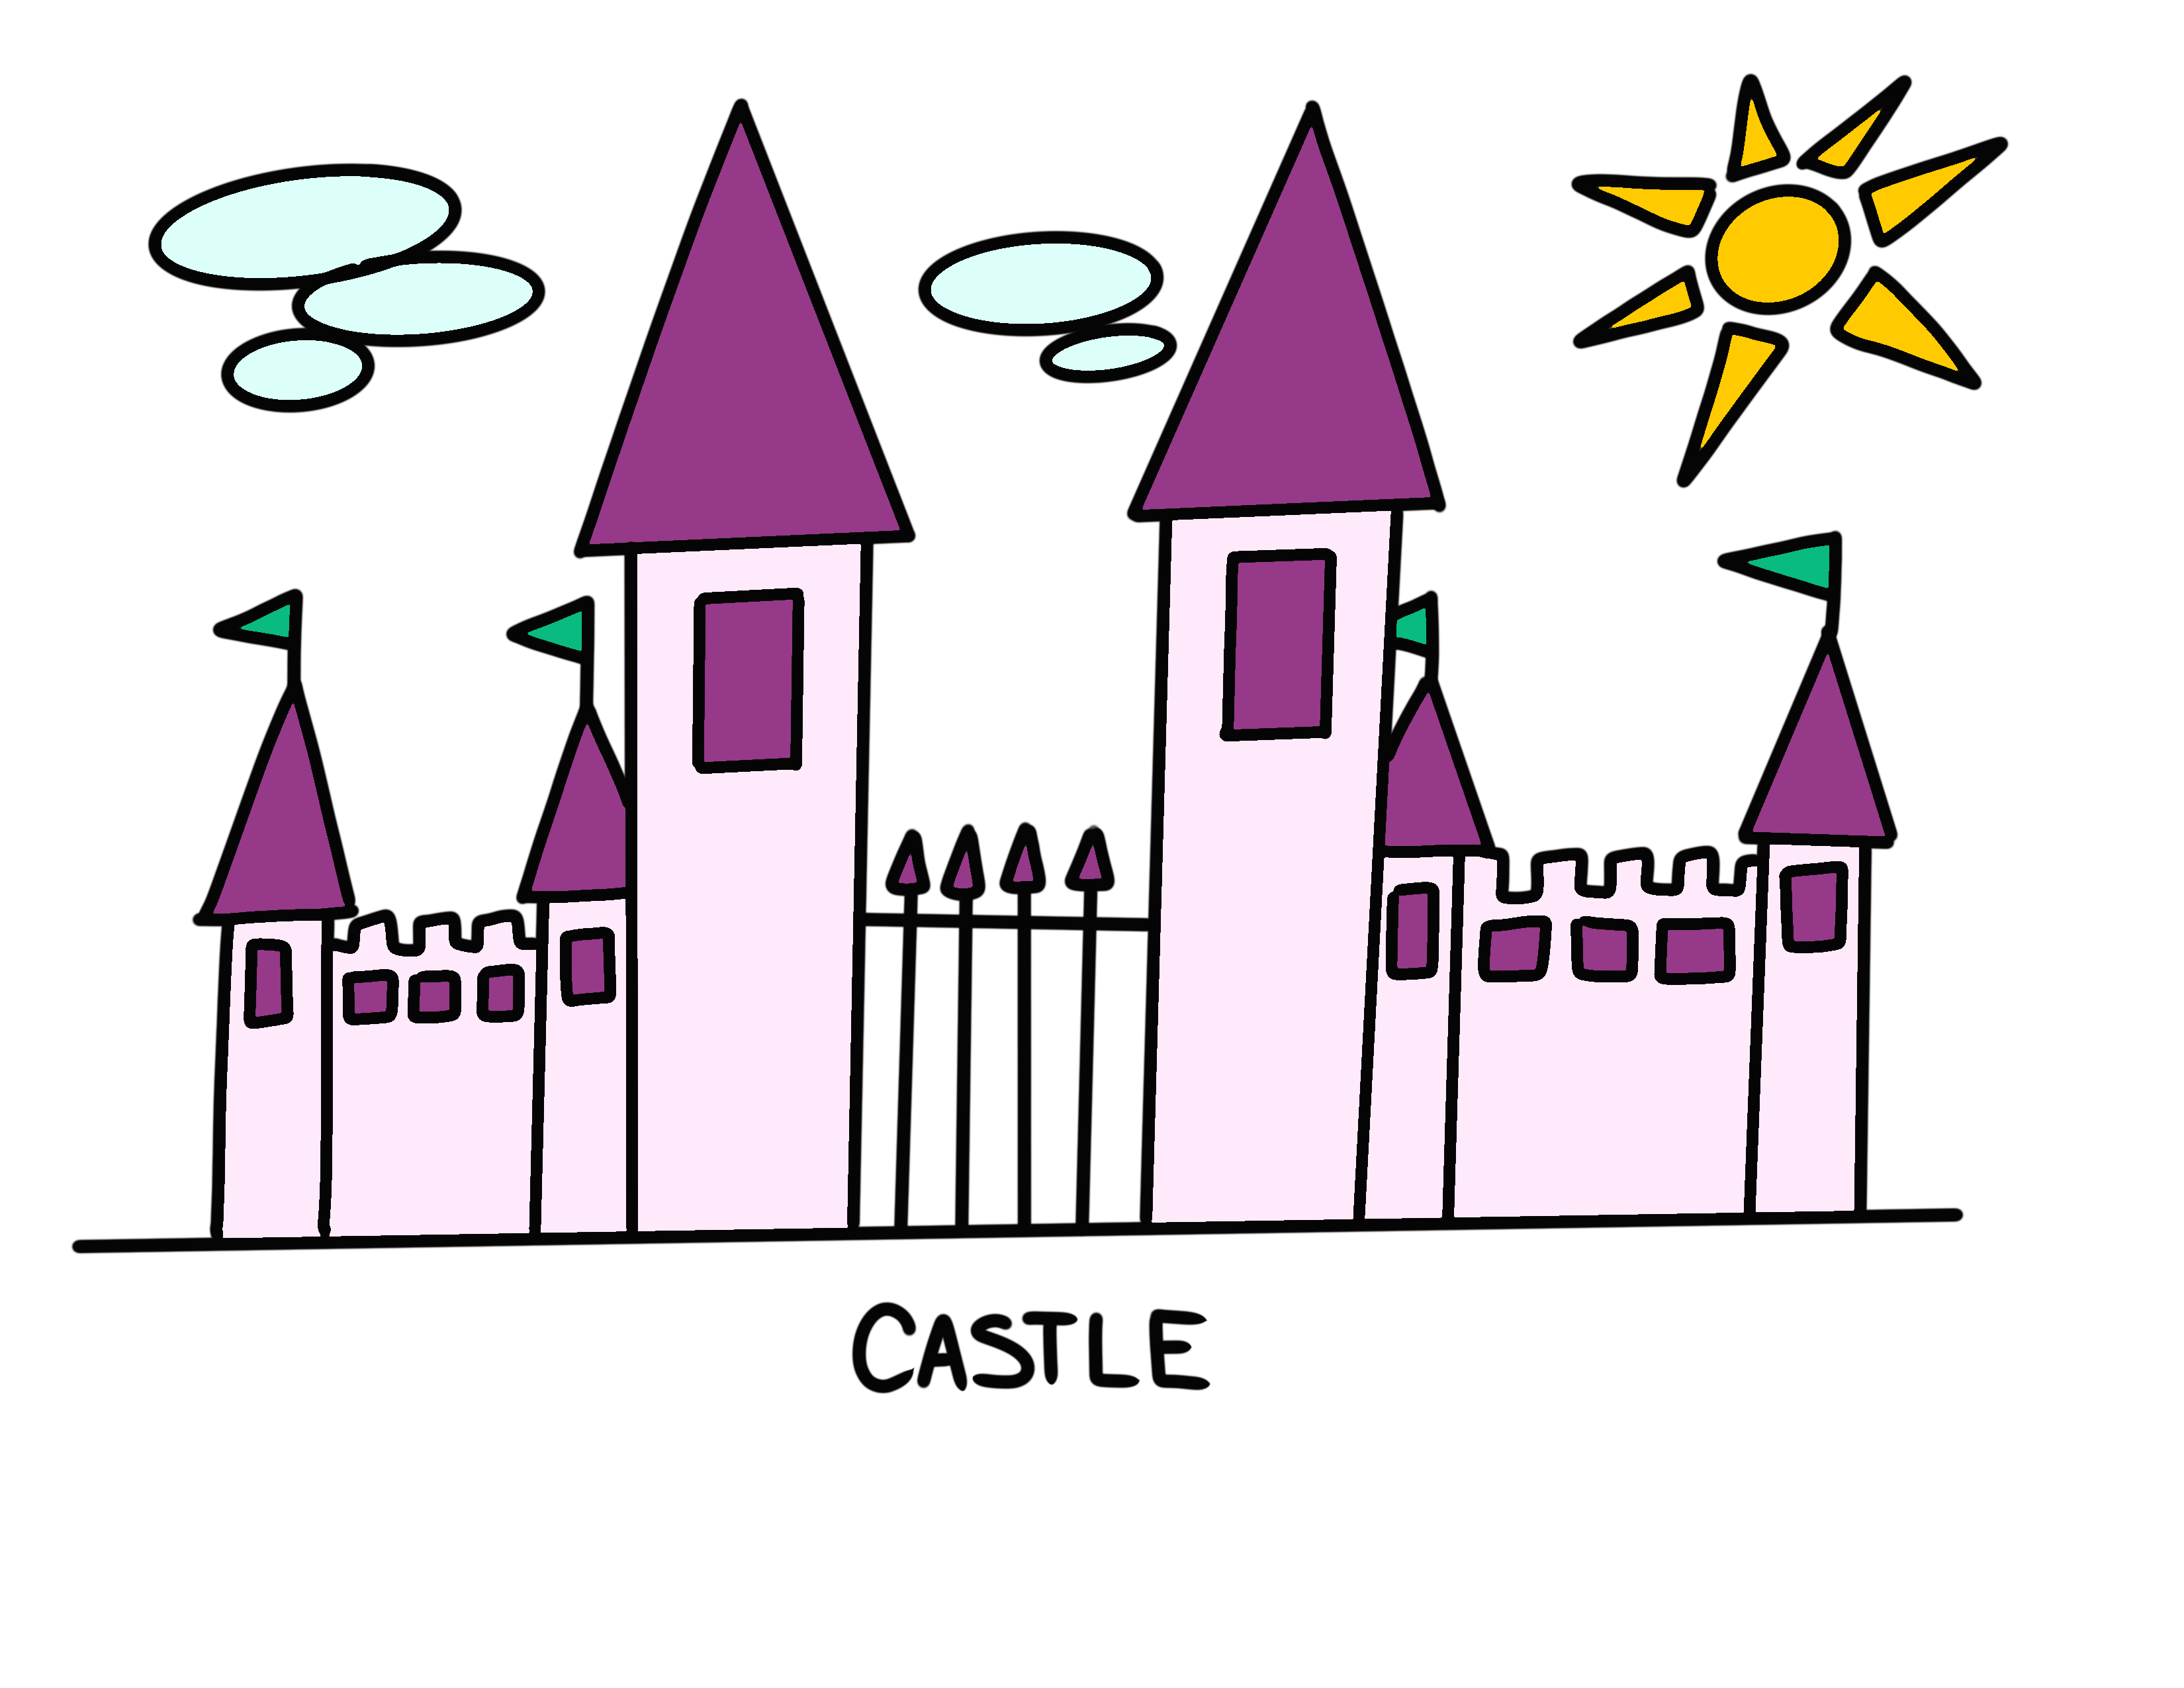 How To Draw A Castle In